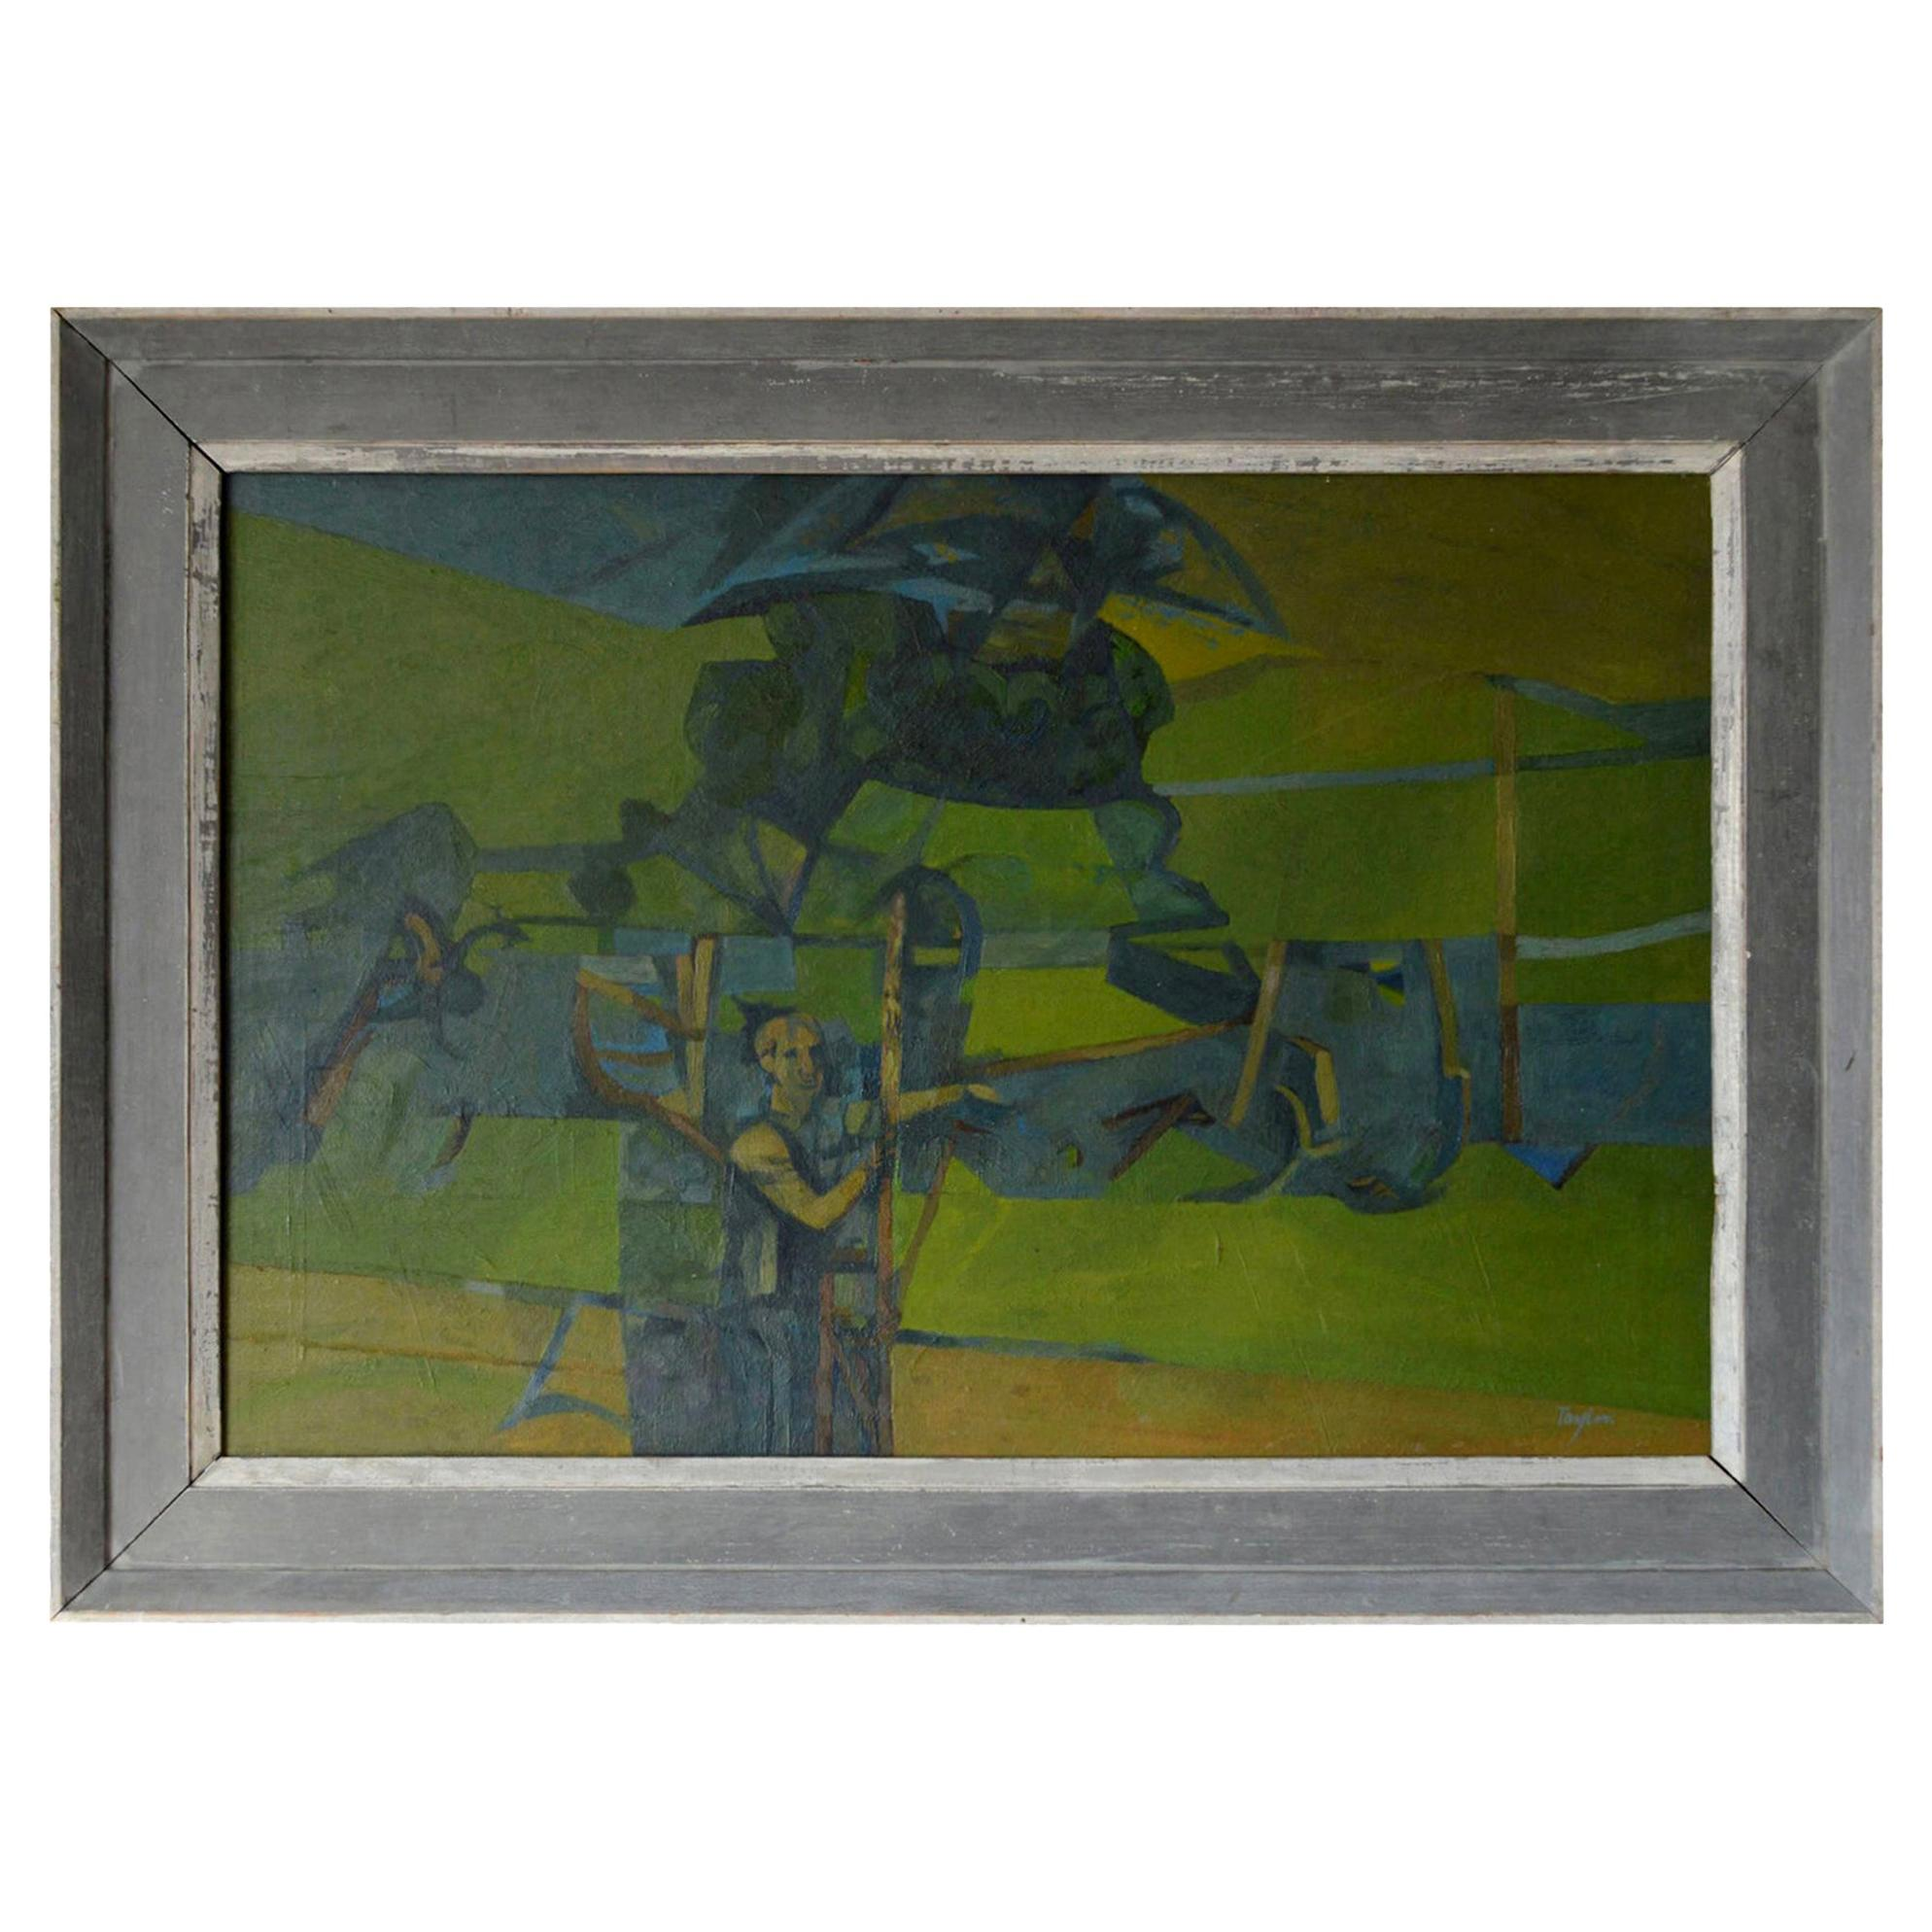 Figure in an Abstract Landscape, A. C. Taylor, circa 1950